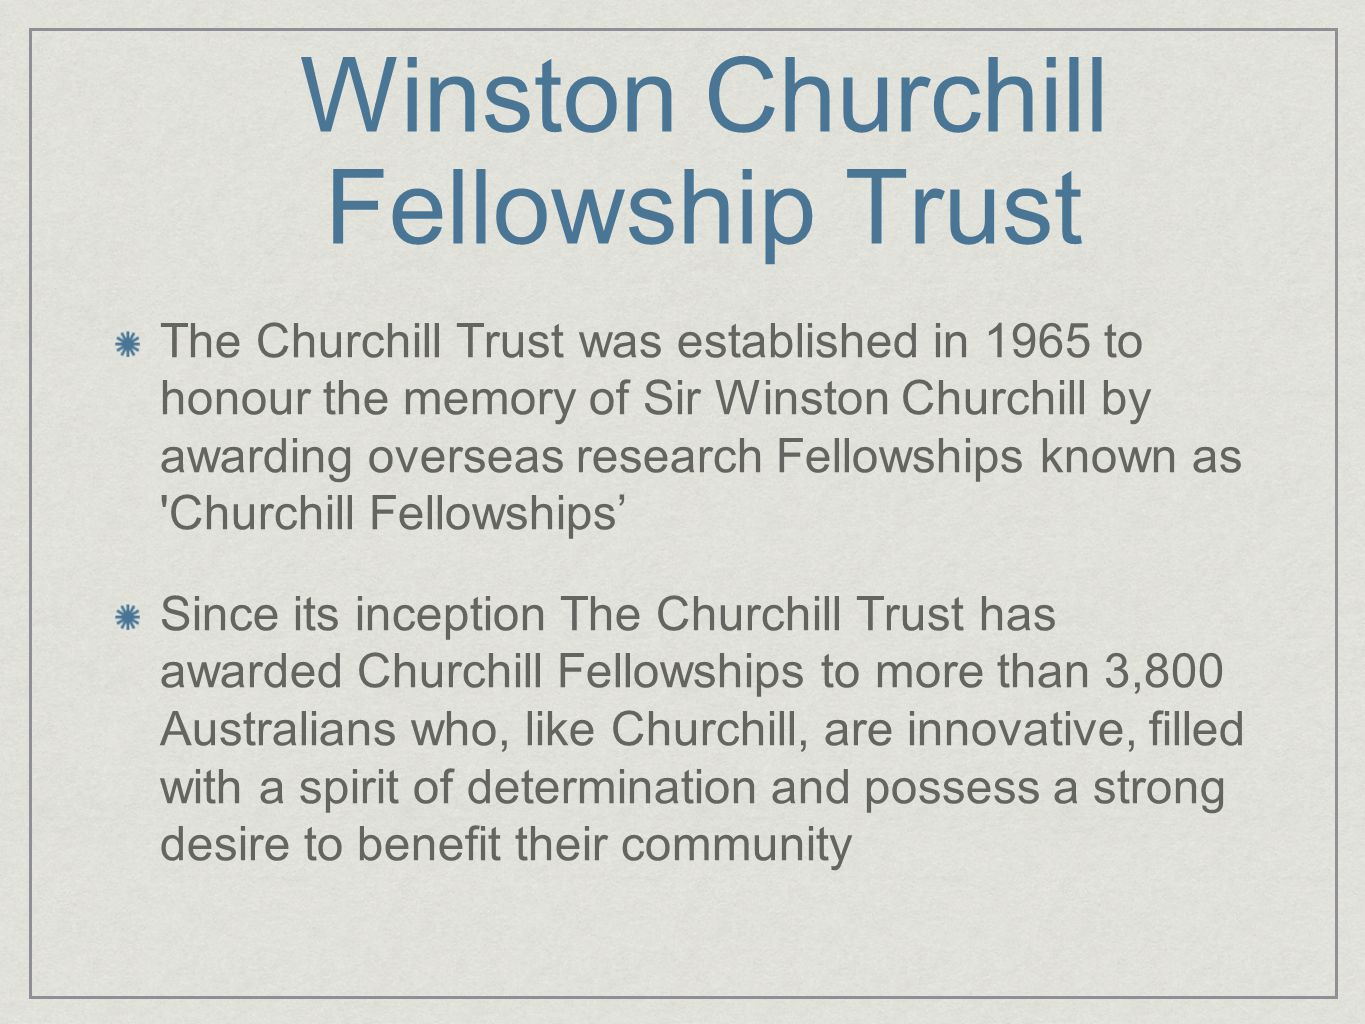 Winston Churchill Fellowship Trust The Churchill Trust was established in 1965 to honour the memory of Sir Winston Churchill by awarding overseas research Fellowships known as Churchill Fellowships' Since its inception The Churchill Trust has awarded Churchill Fellowships to more than 3,800 Australians who, like Churchill, are innovative, filled with a spirit of determination and possess a strong desire to benefit their community